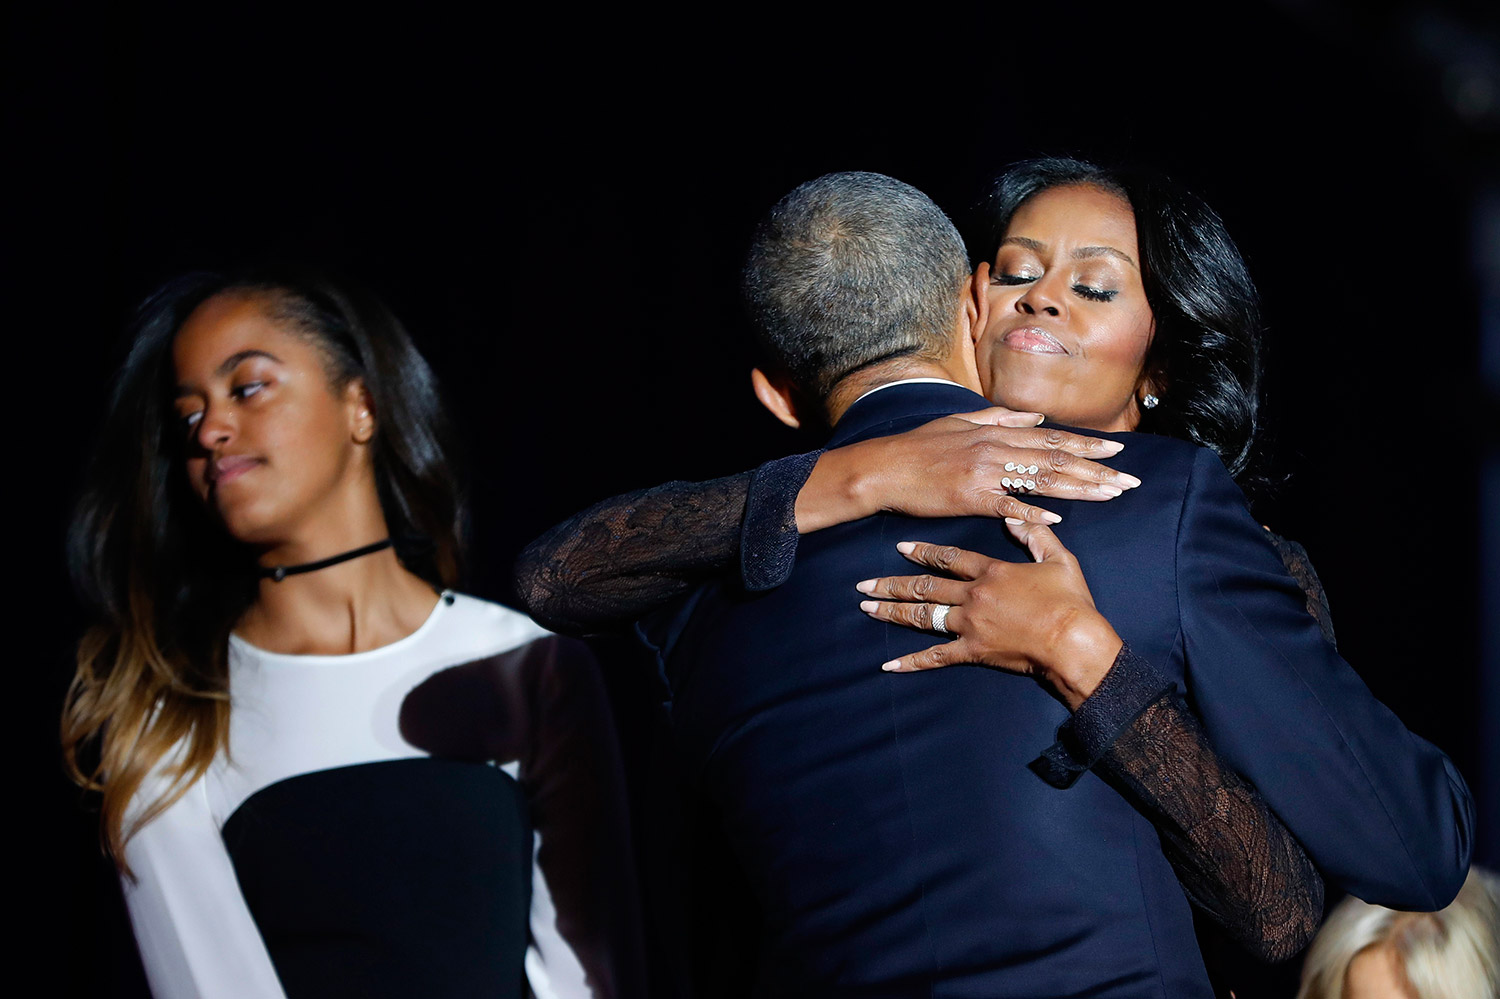 The Obamas hug after his farewell address, next to their daughter Malia. Associated Press/Pablo Martinez Monsivais